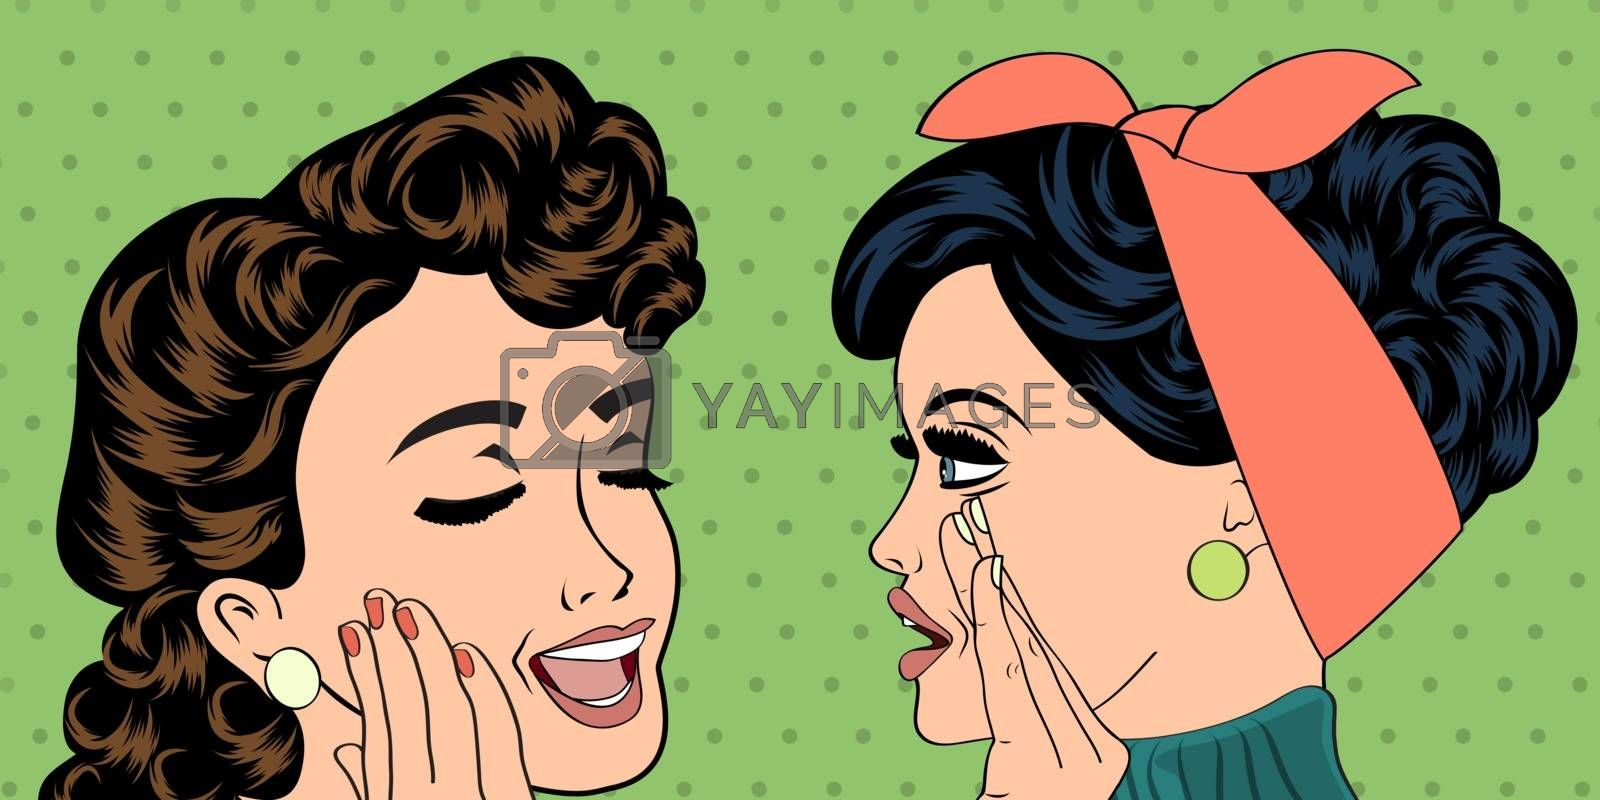 pop art retro women in comics style that gossip, vector illustration